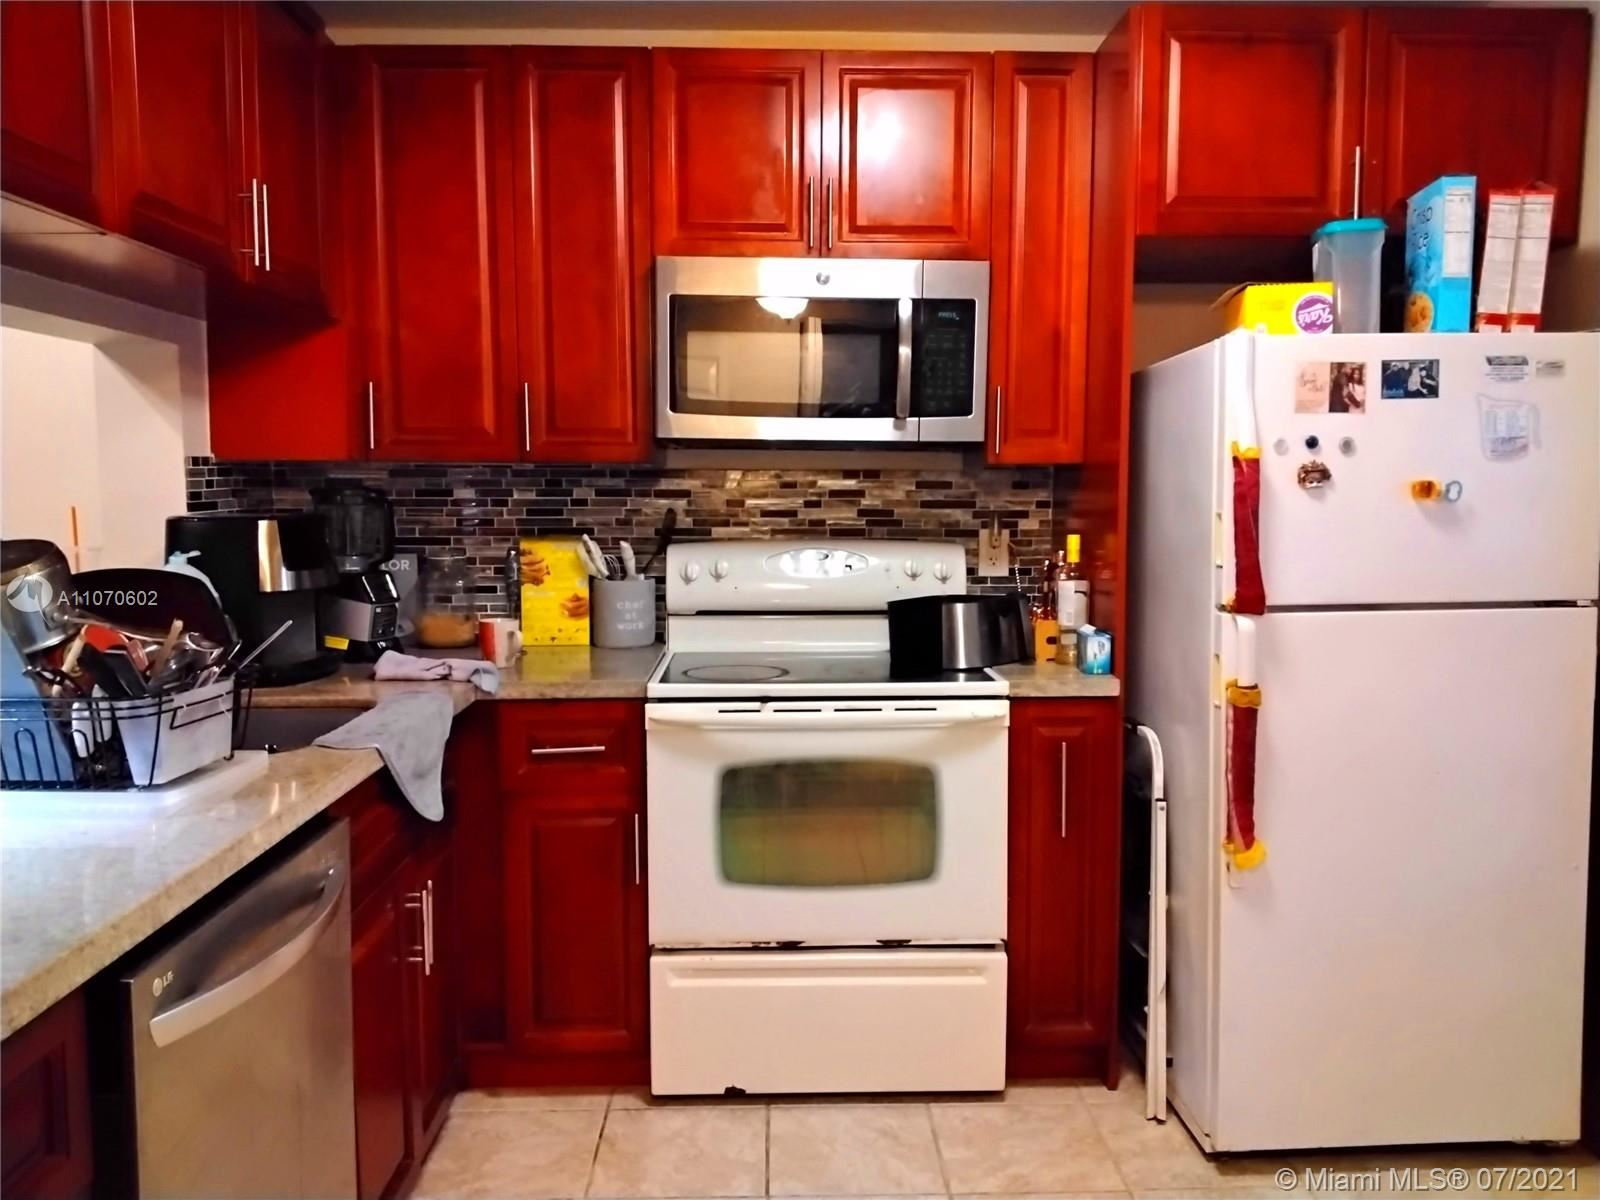 2492 NW 89th Dr #2492, Coral Springs, FL 33065 - #: A11070602